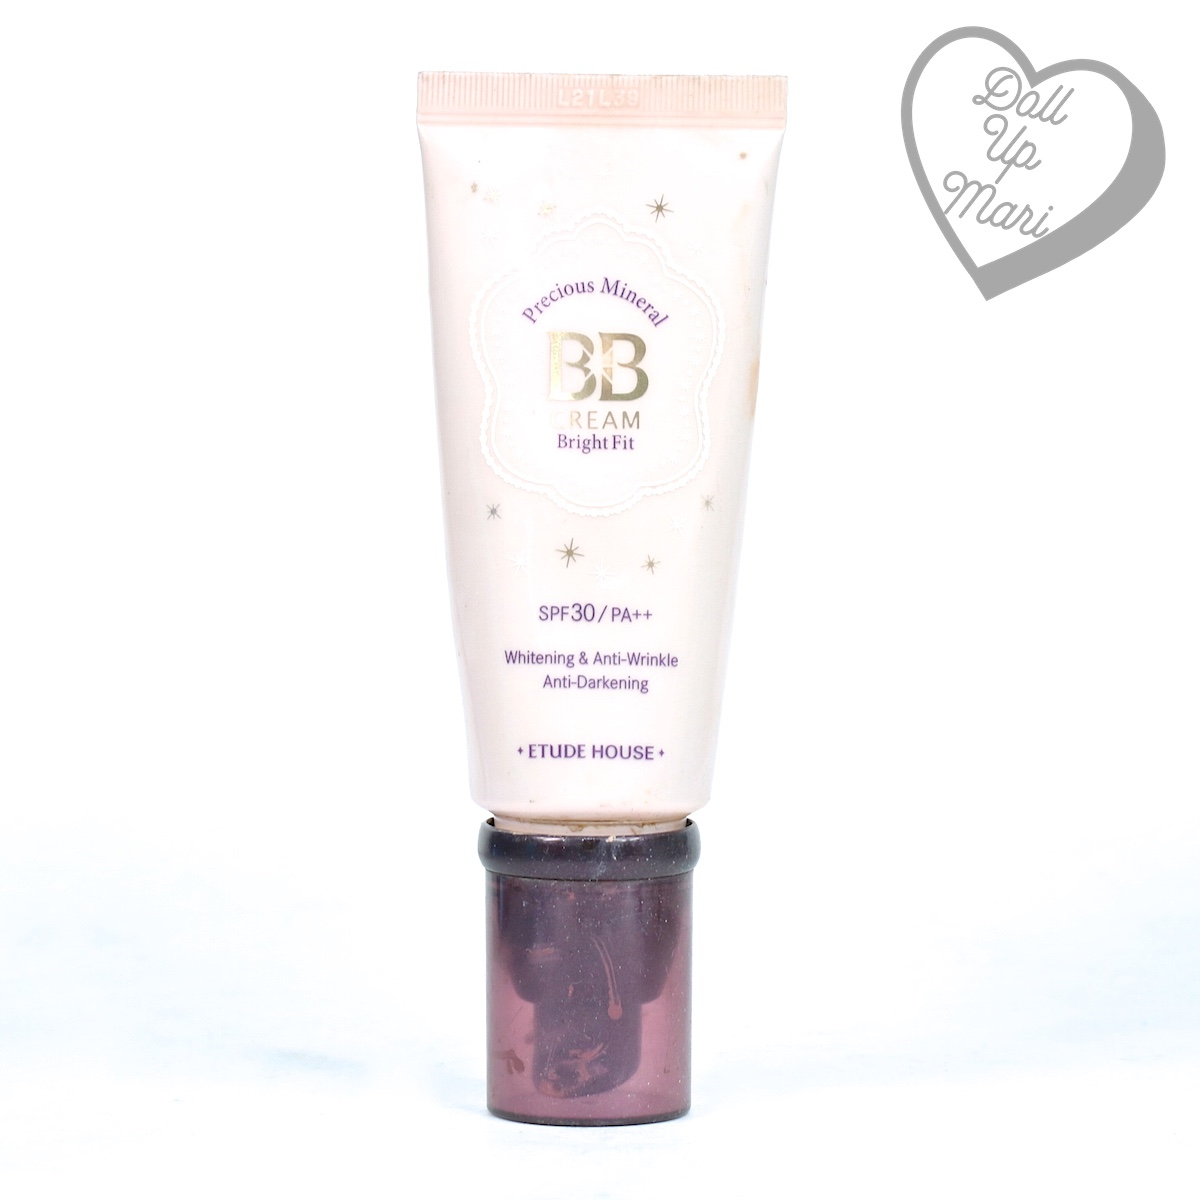 Etude House Precious Mineral BB Cream (Bright Fit)